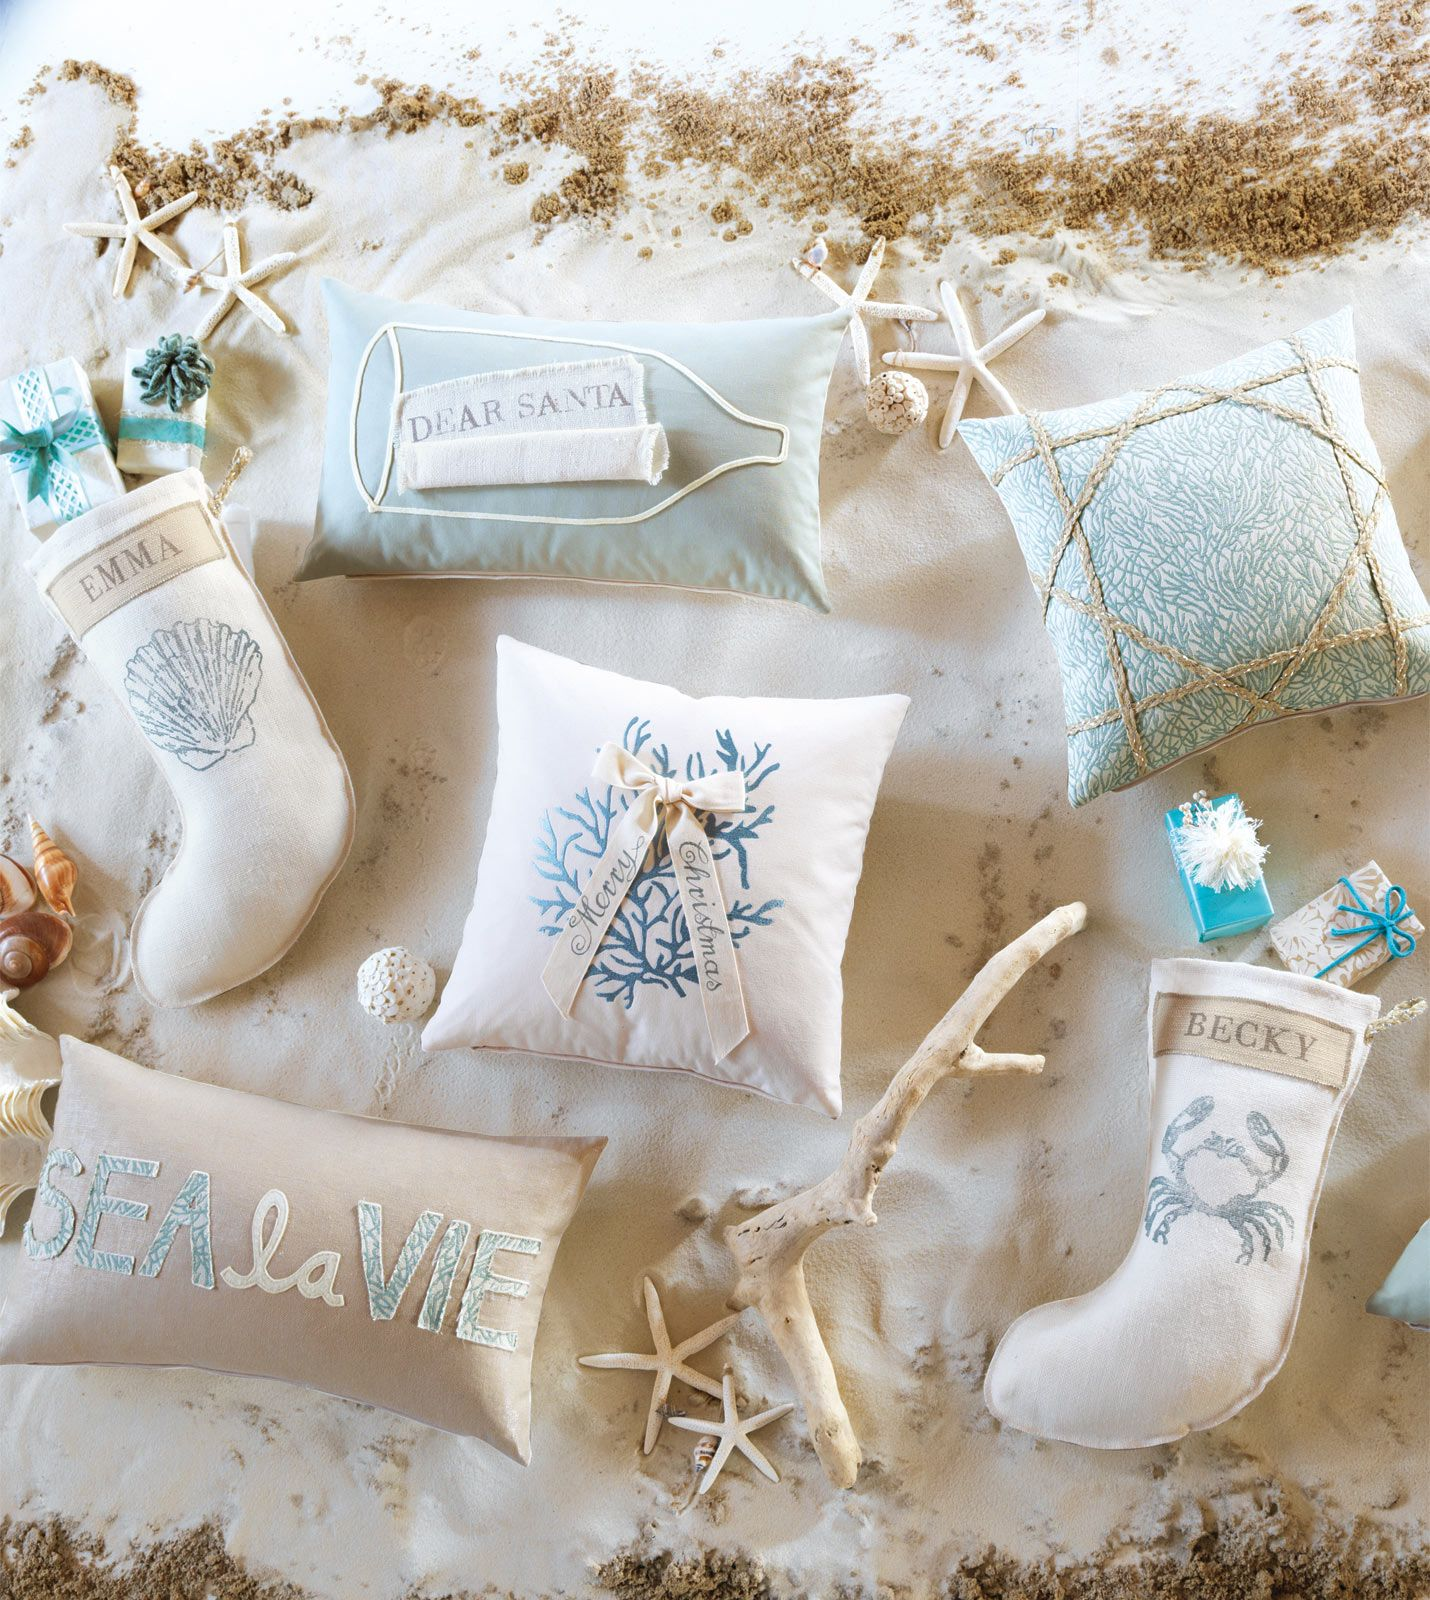 ea holiday luxury home decor by eastern accents coastal tidings collection - Coastal Christmas Stockings